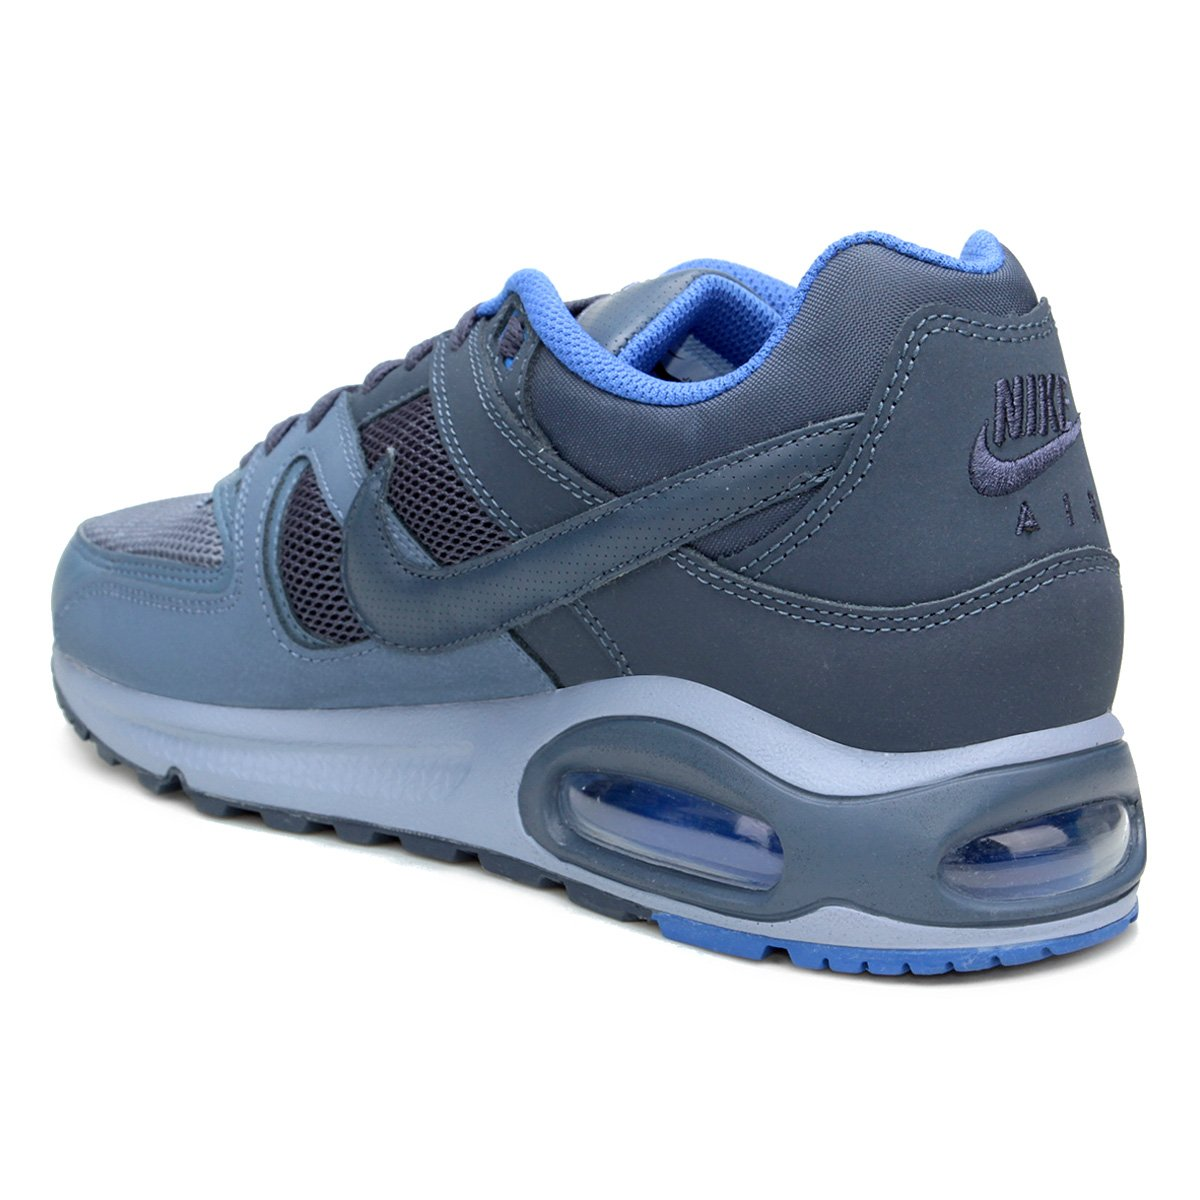 low priced 065a2 652ec Tênis Nike Air Max Command Masculino